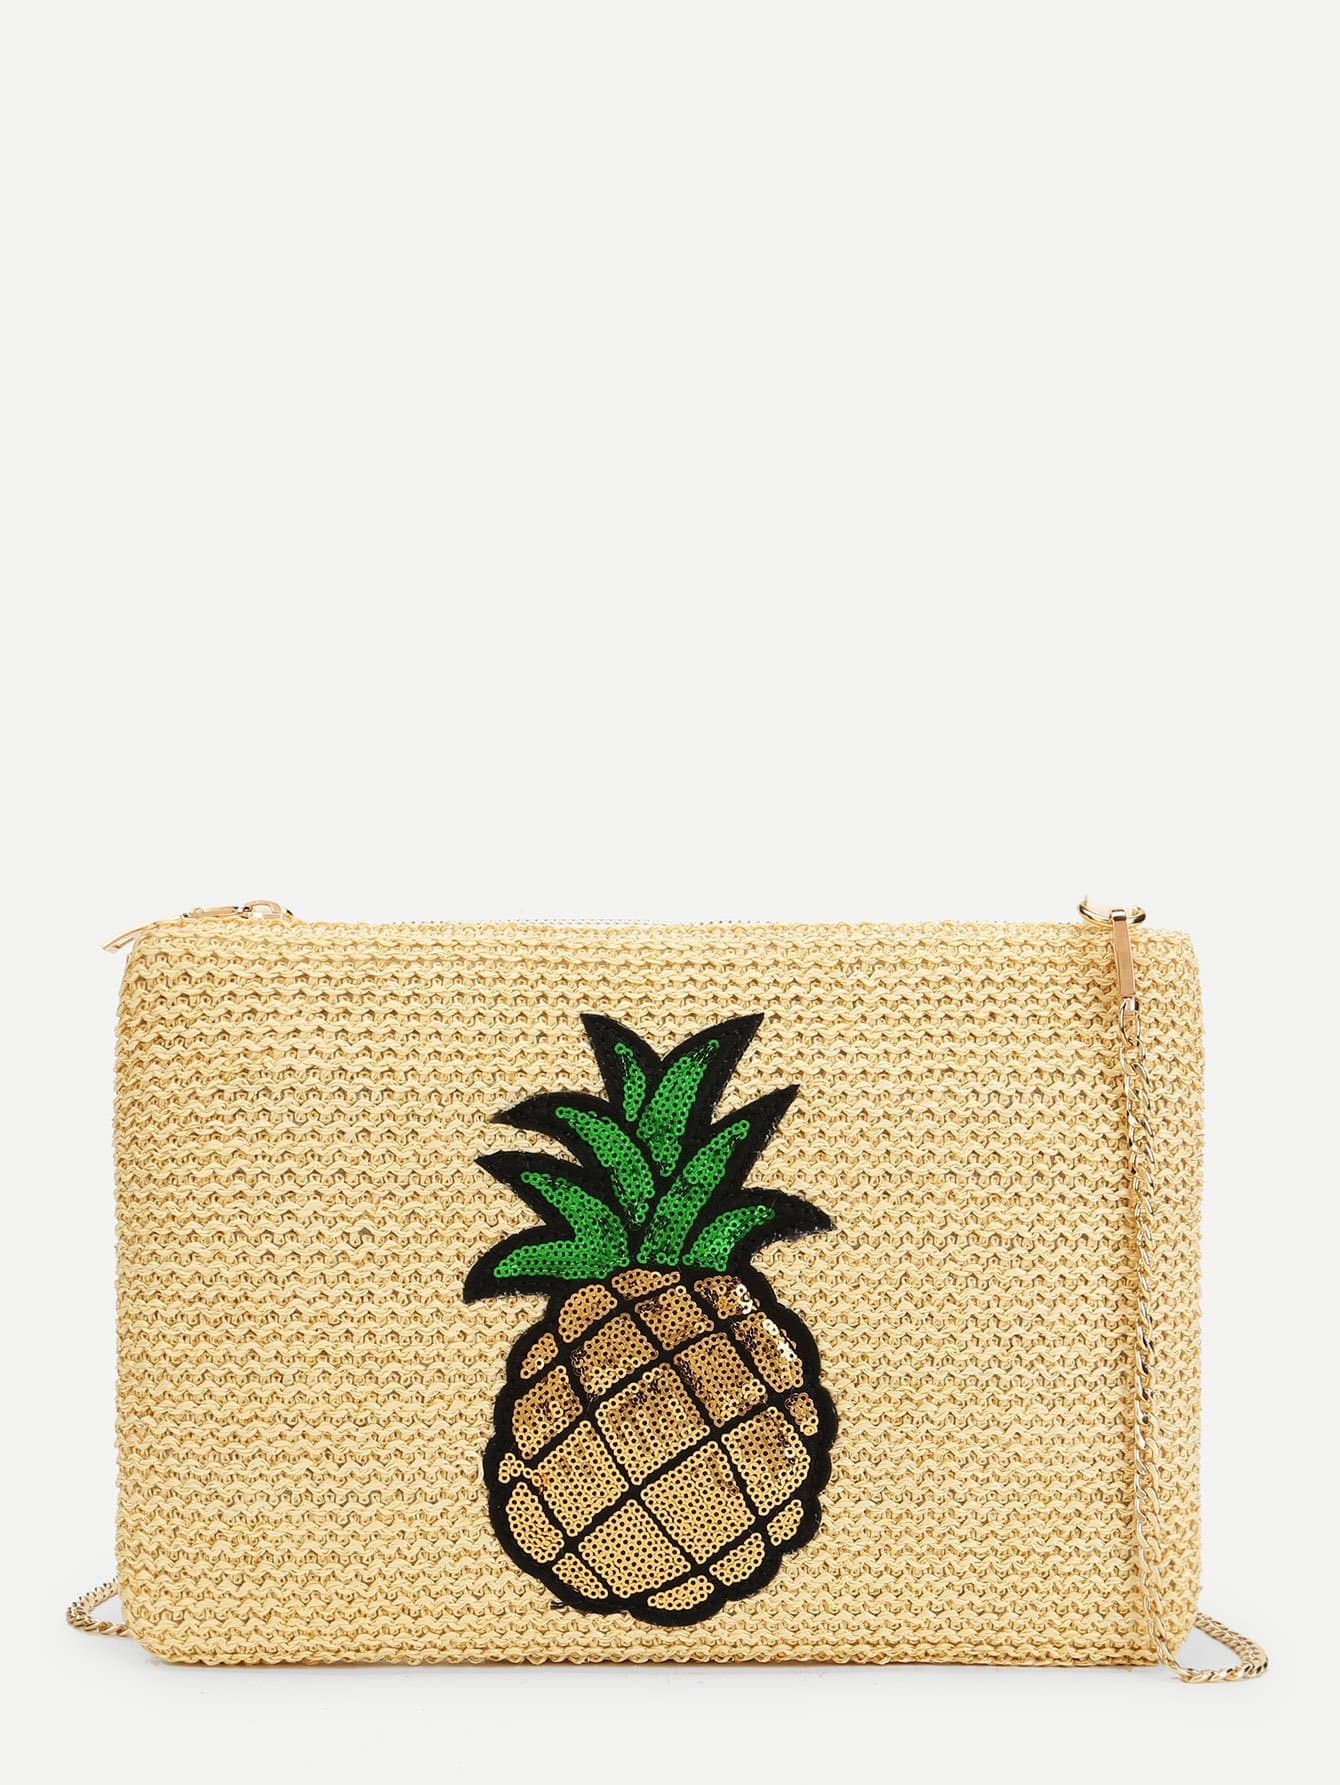 Pineapple Pattern Straw Chain Bag palm tree pattern straw chain bag